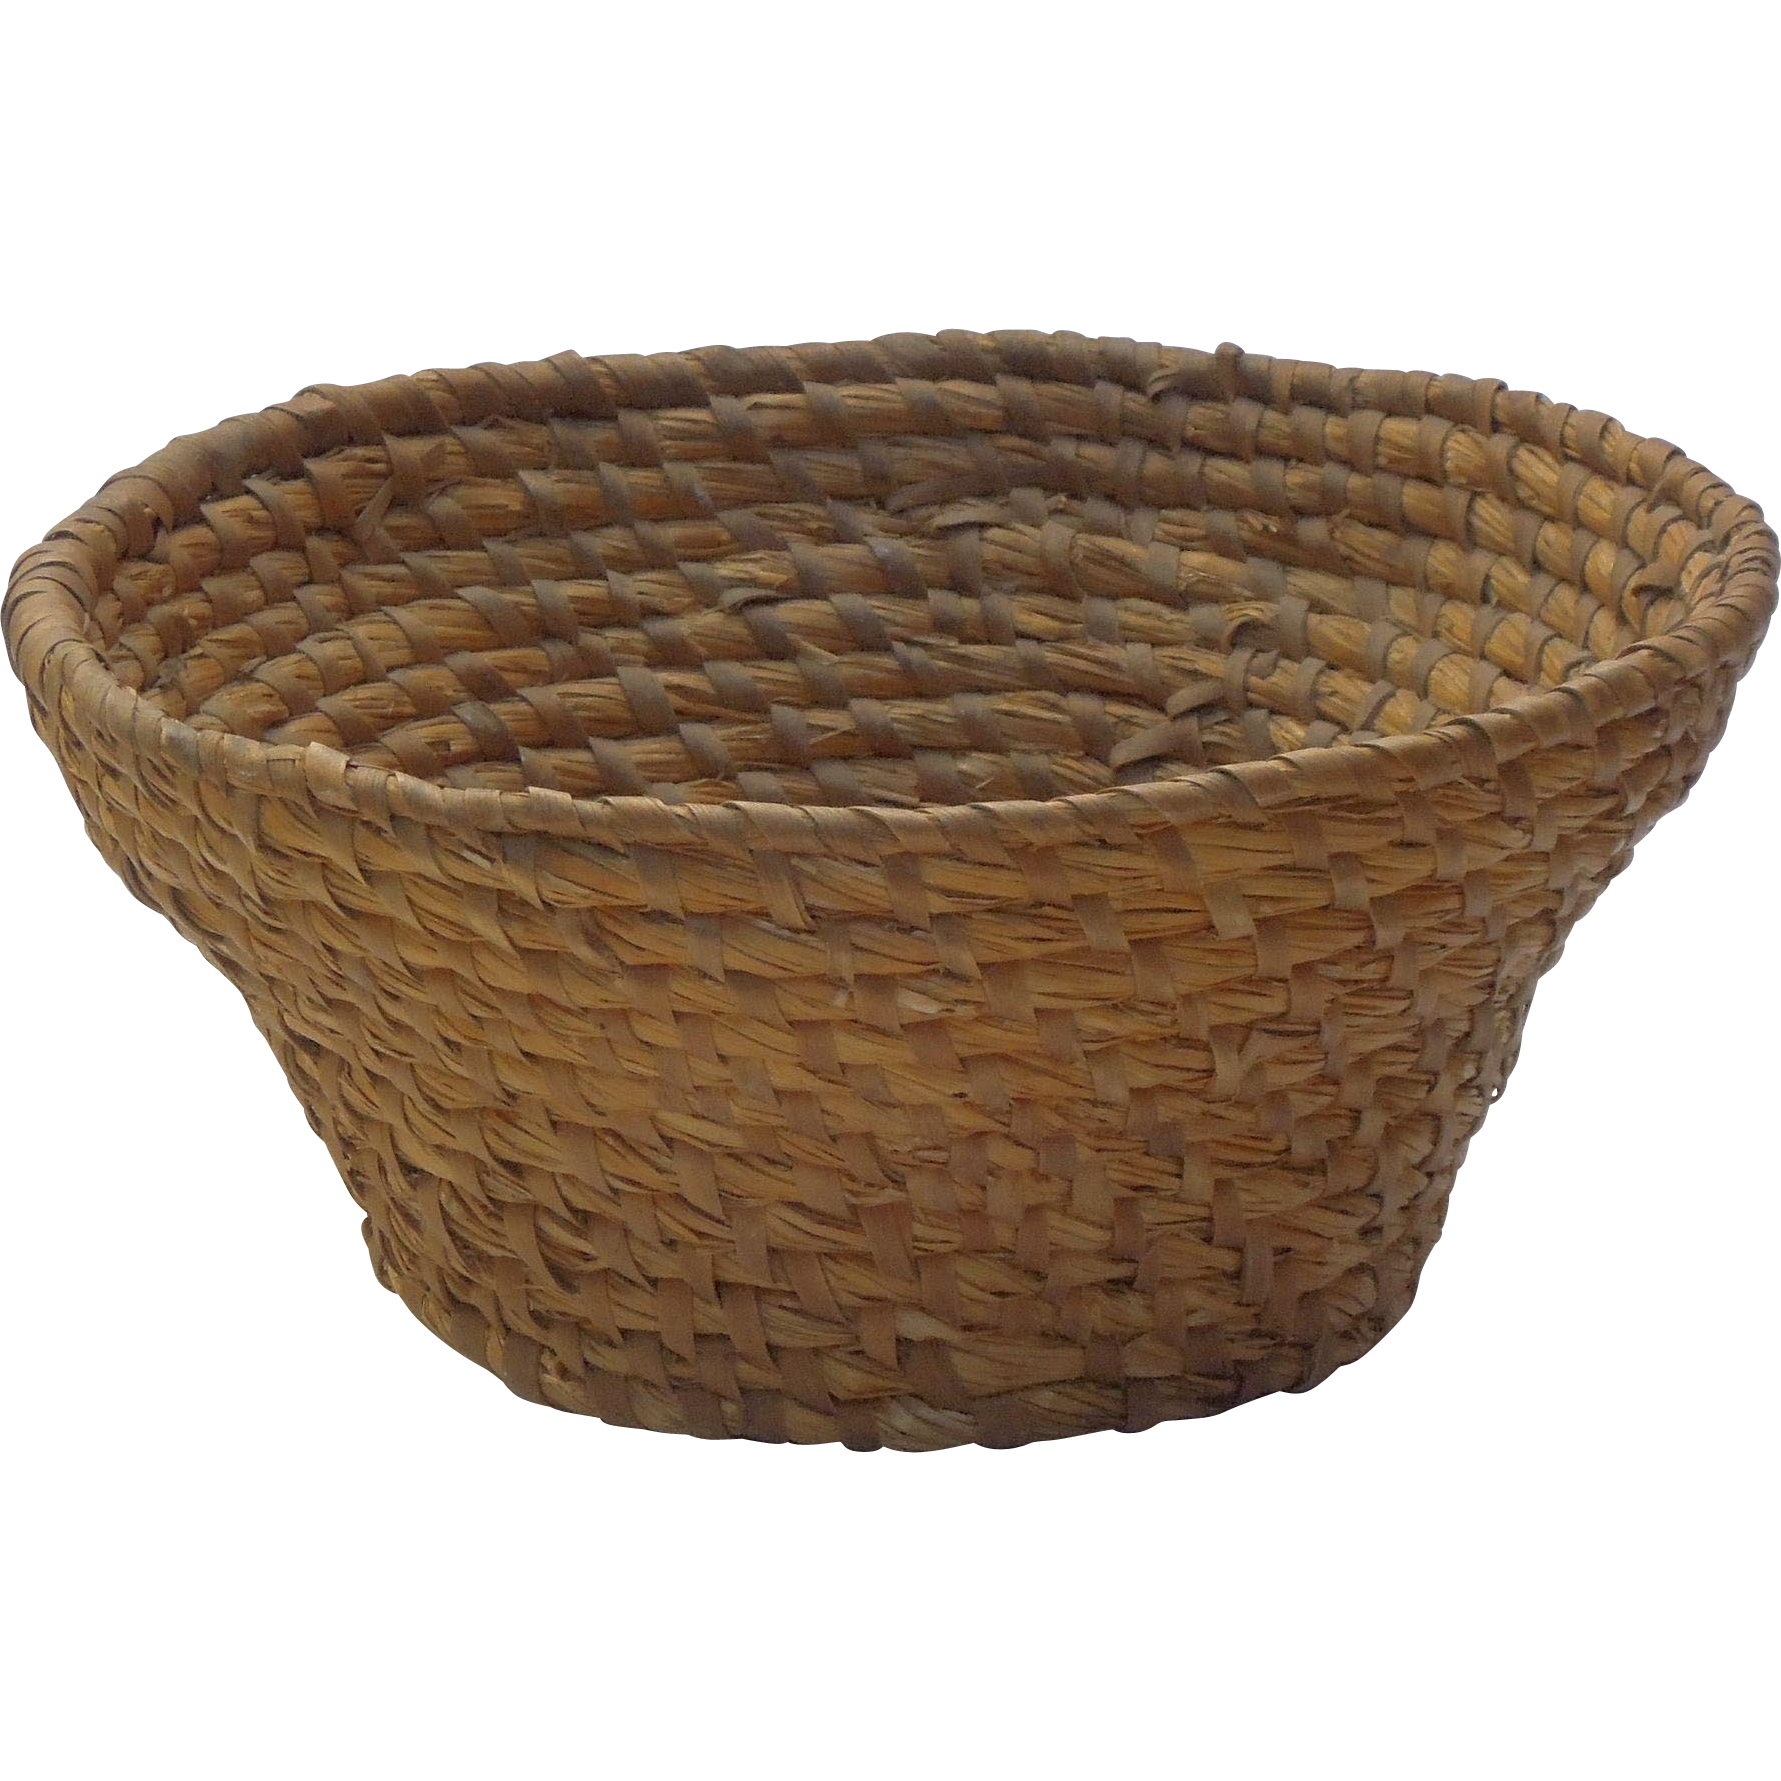 RESERVED - Rye Coiled Basket